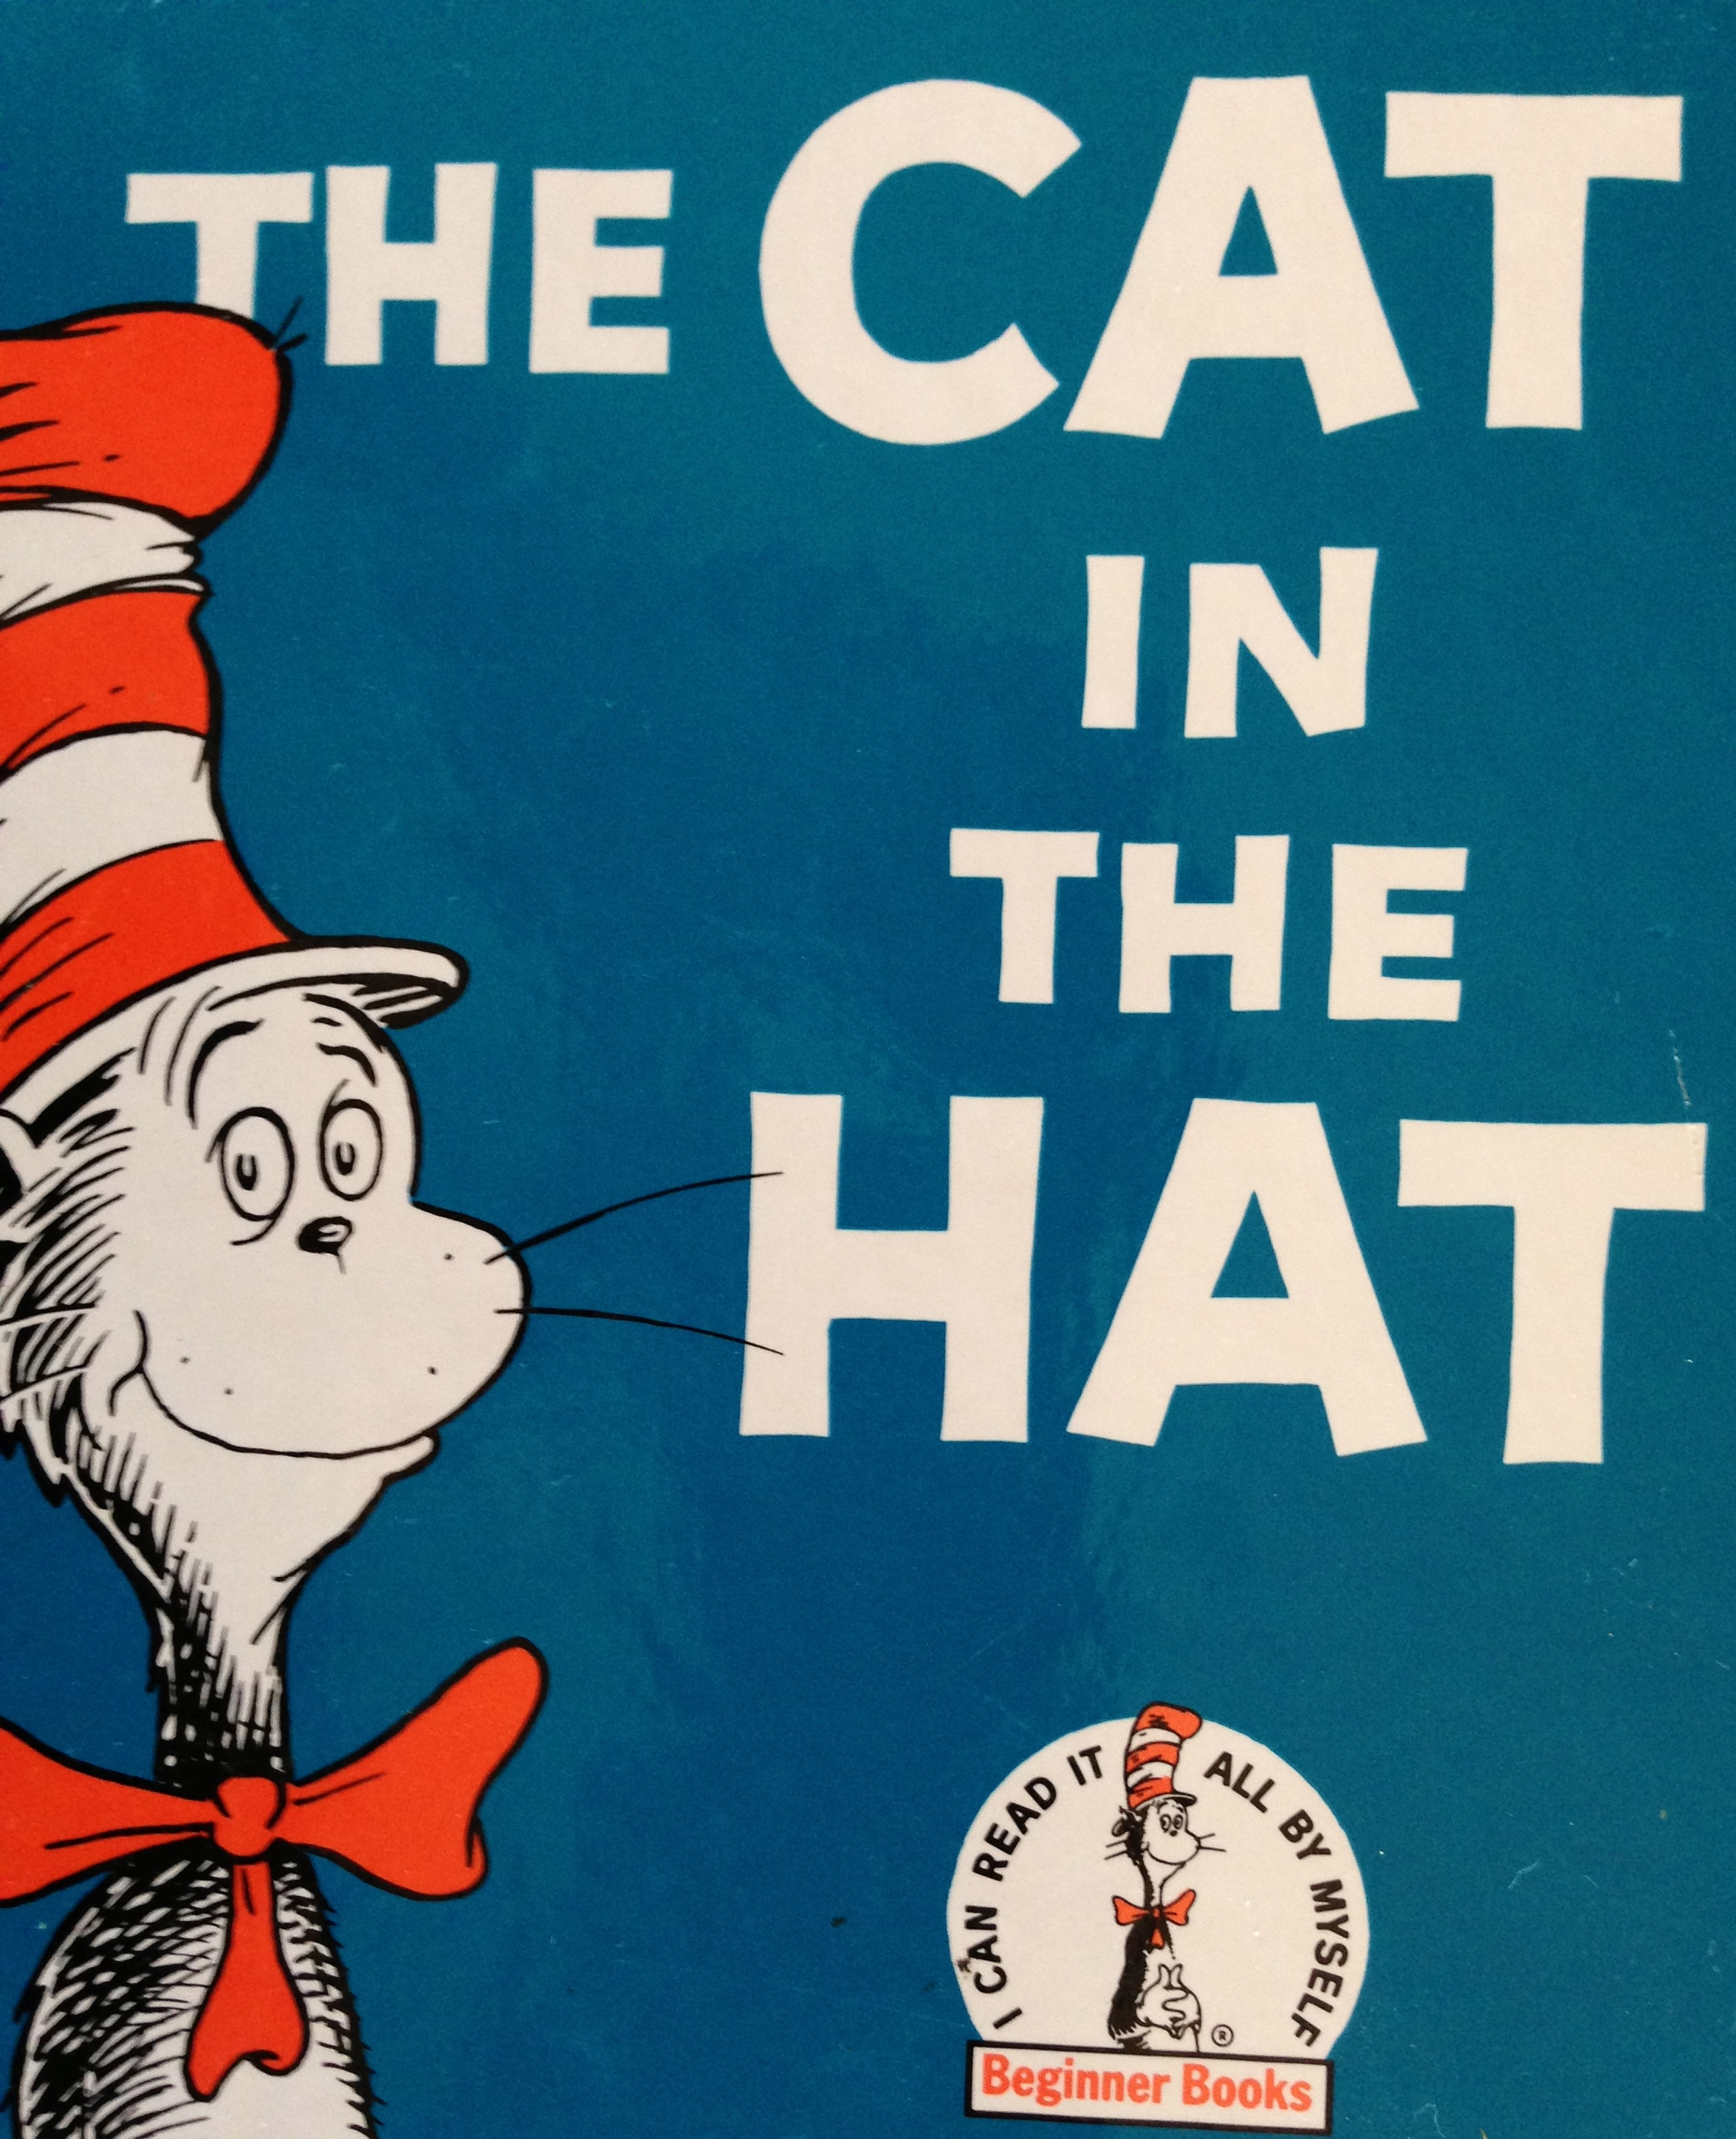 The Cat In The Hat Comes To Qpac